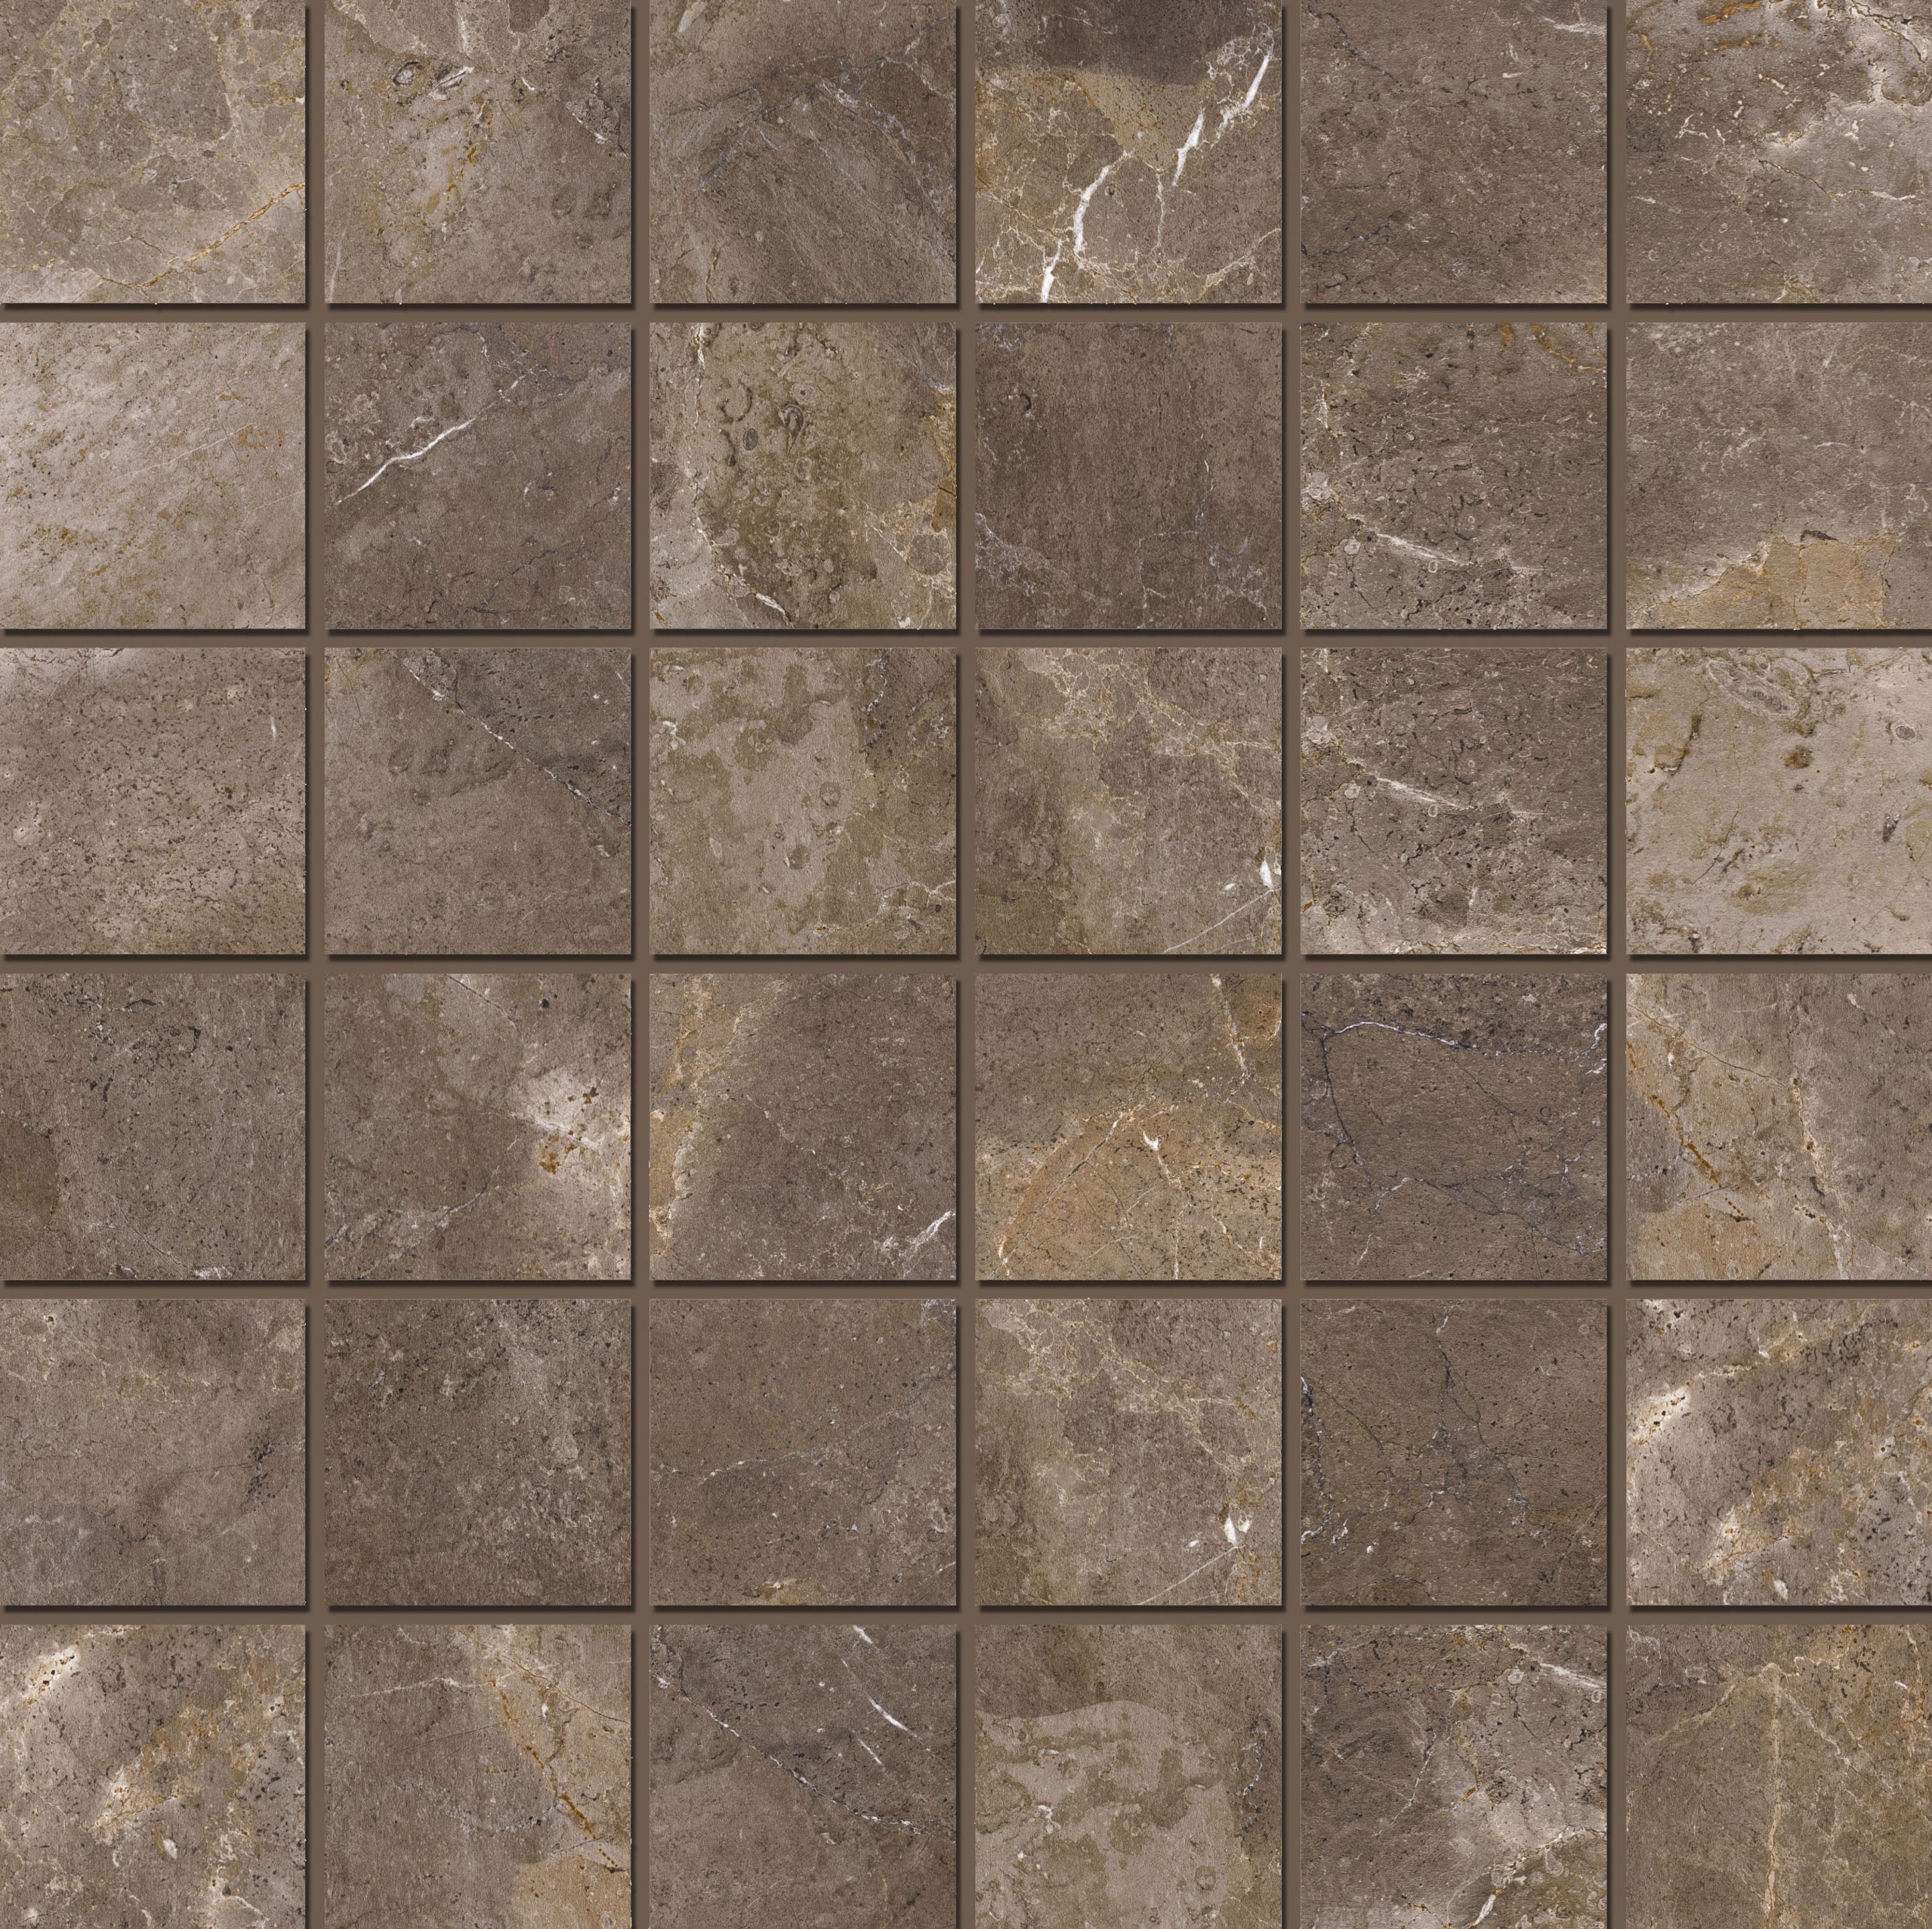 Mosaic 4,7x4,7 Imperial Brown